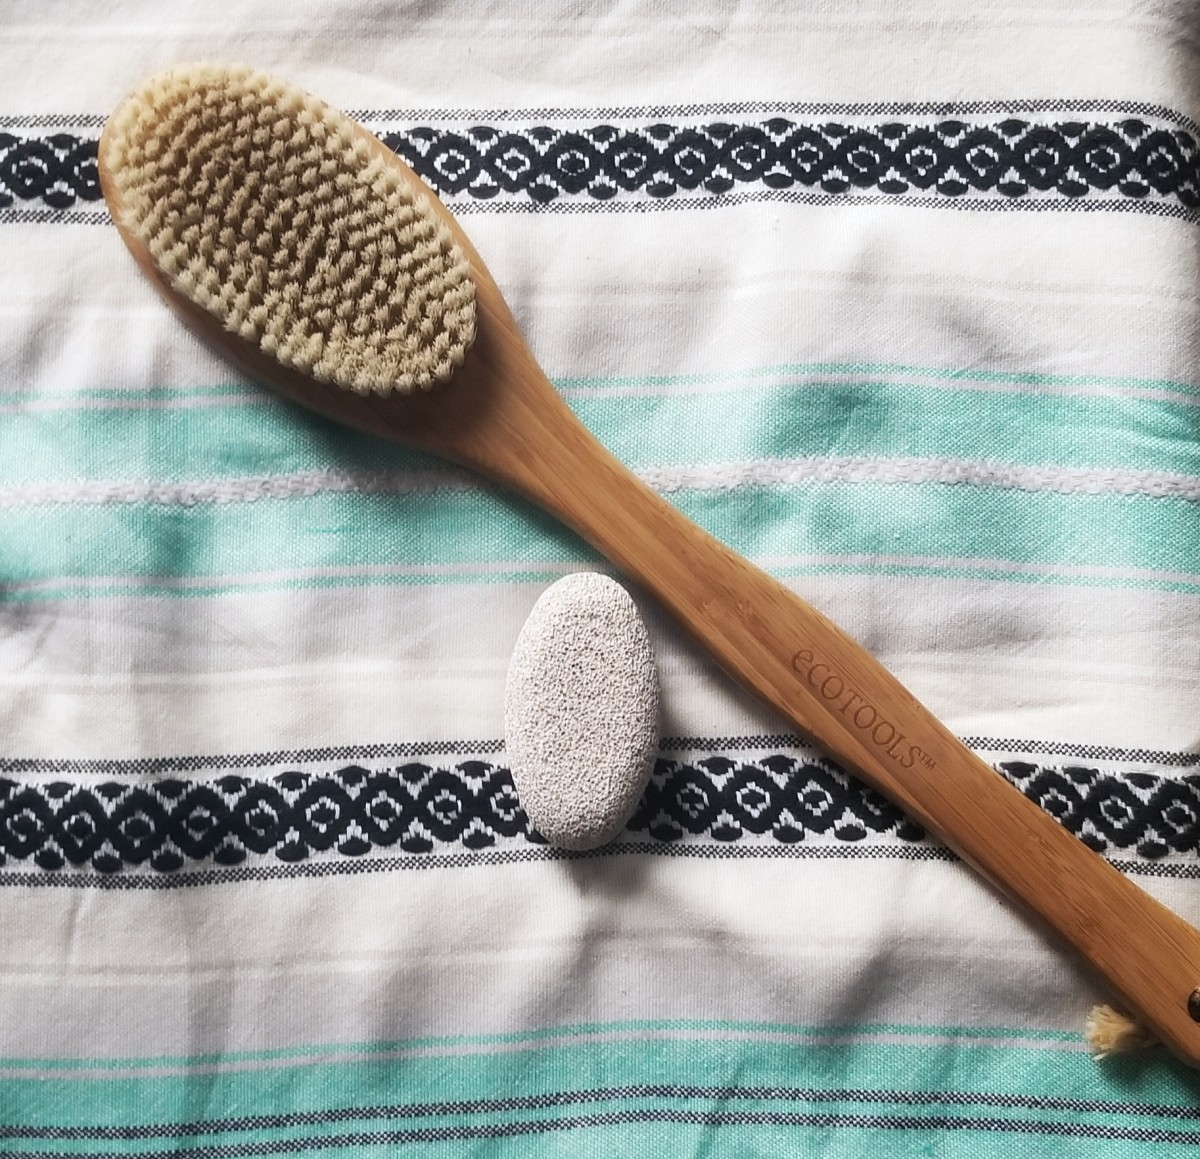 A dry brush and pumice stone are spring must-haves!